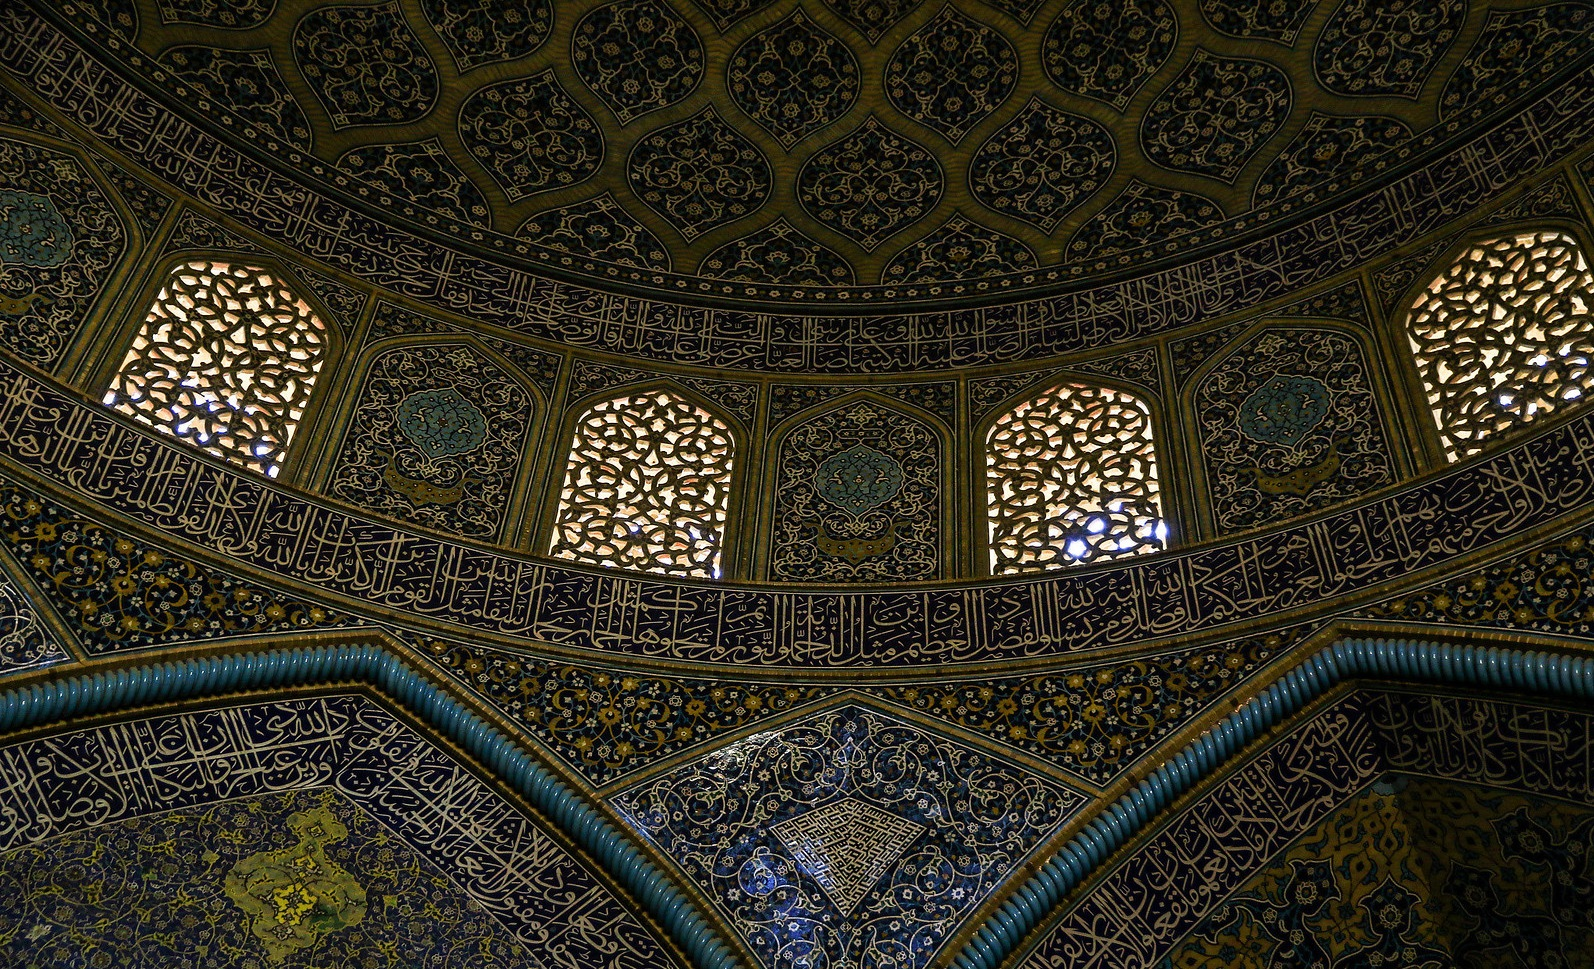 Day 4: Isfahan